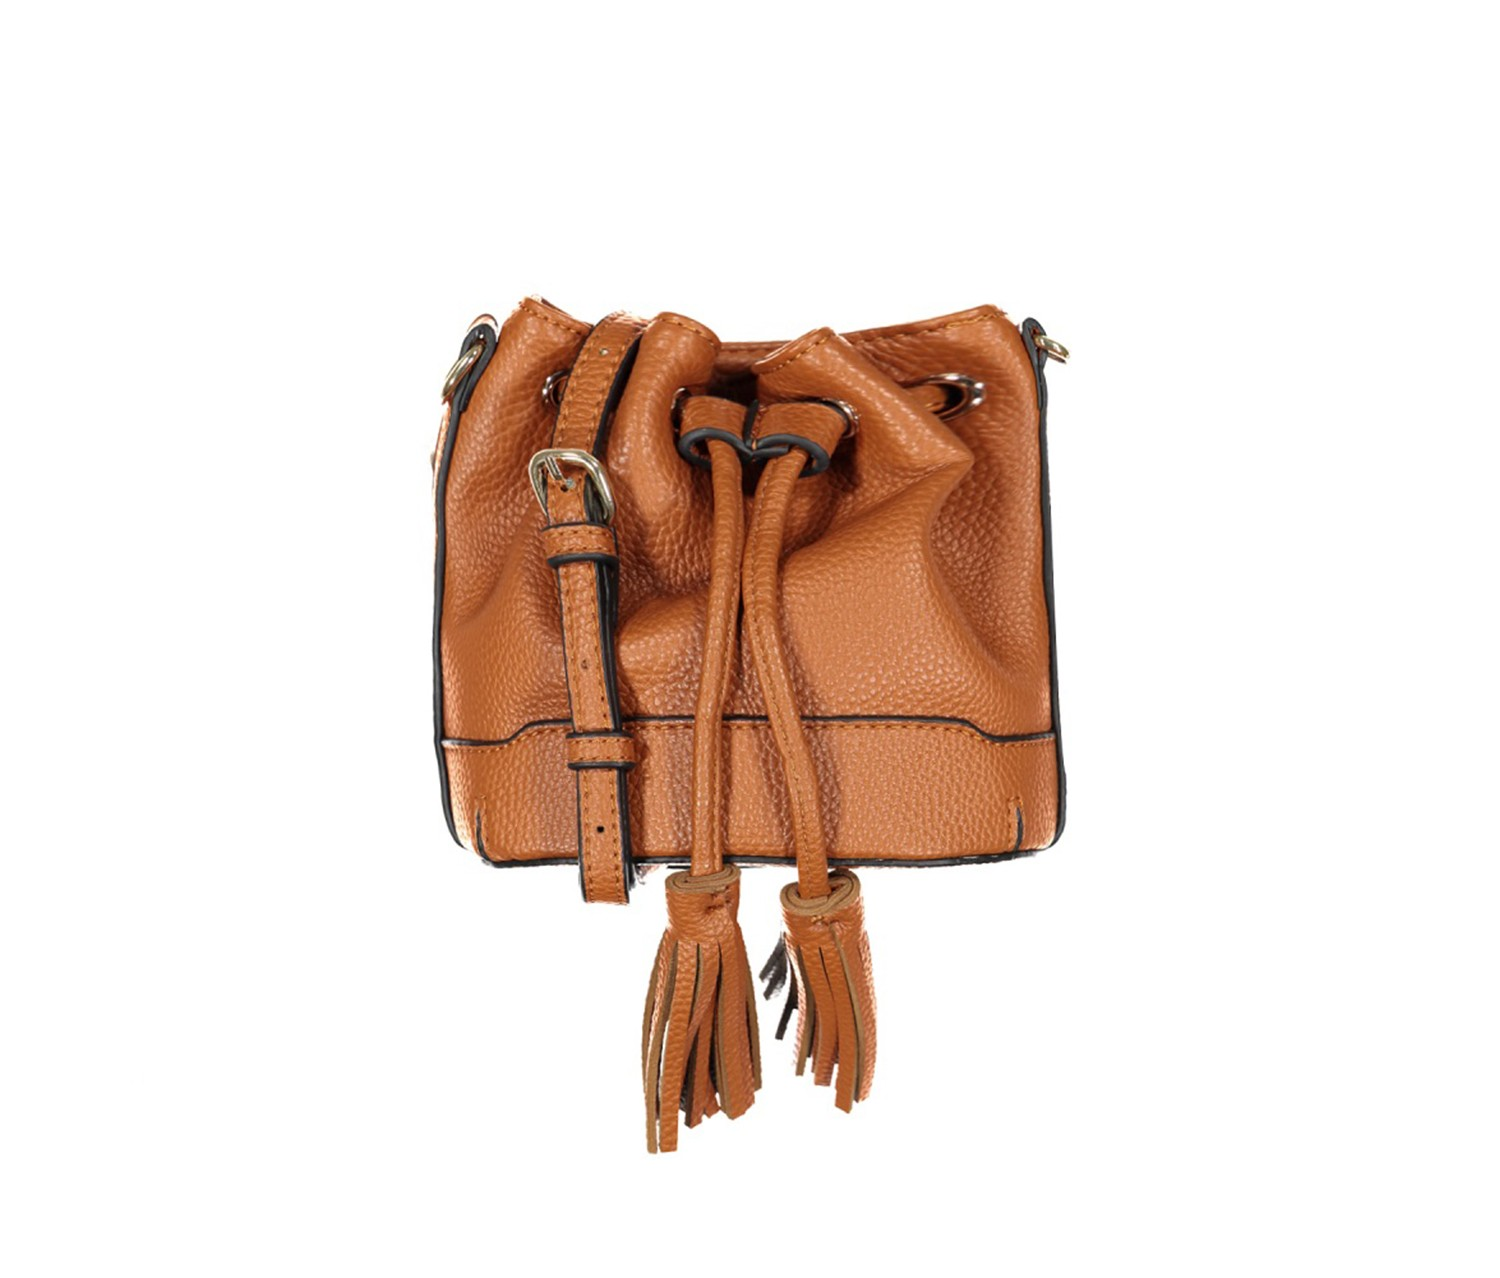 Urban Expressions Ziggy Ring Handle Crossbody Tan Brands For Less Satchel Brown 4 15543 5